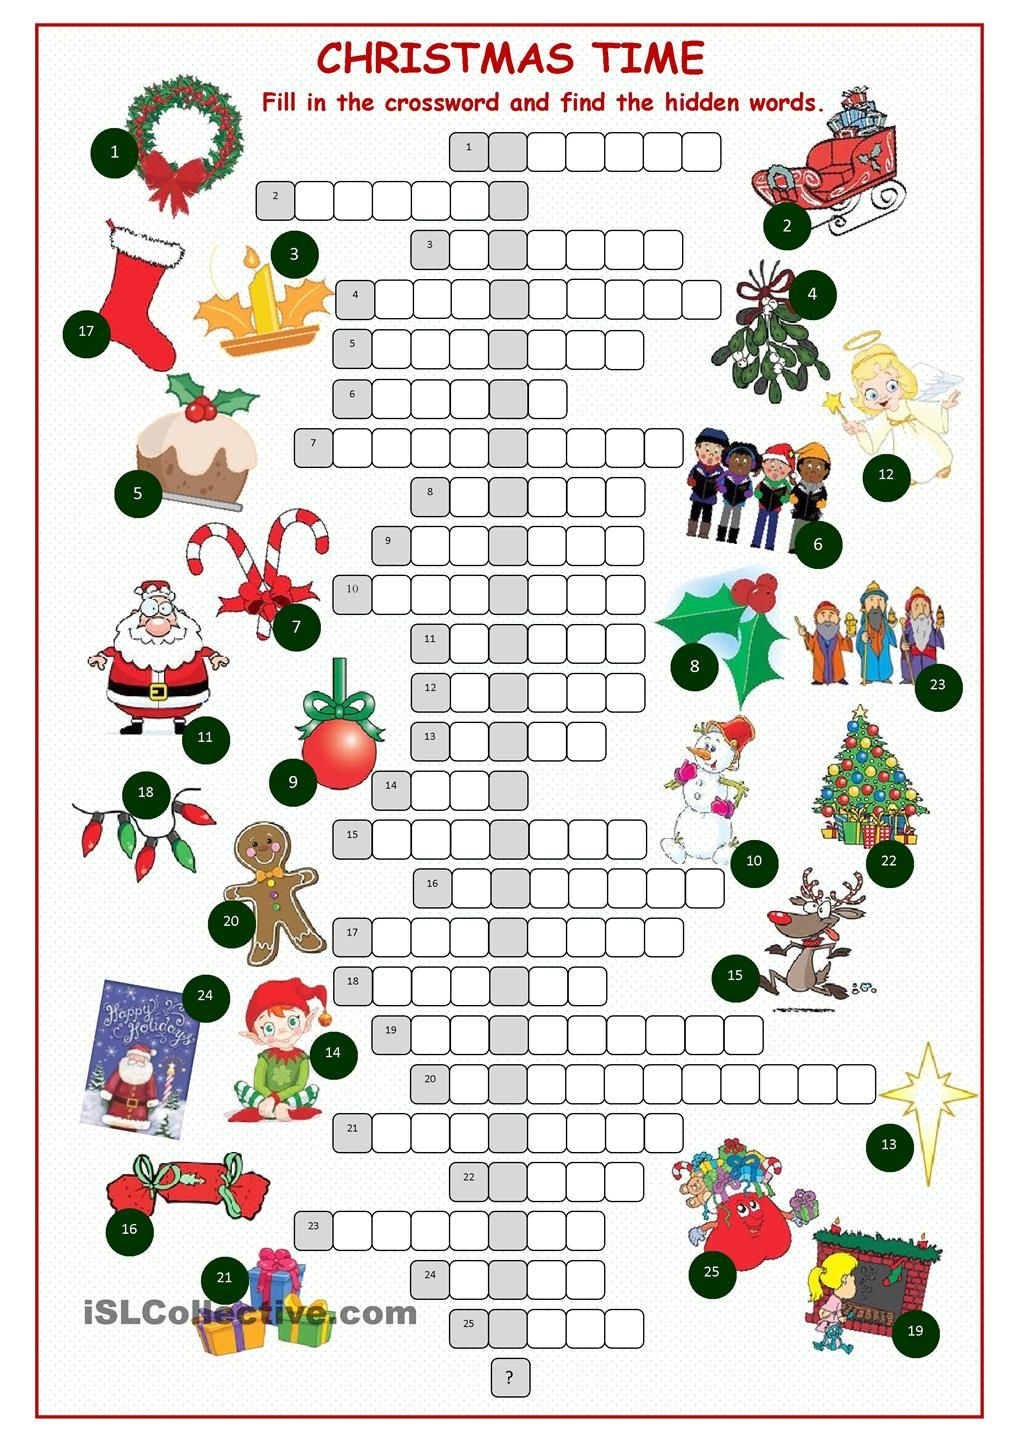 christnas time crossword puzzle enkku pinterest. Black Bedroom Furniture Sets. Home Design Ideas